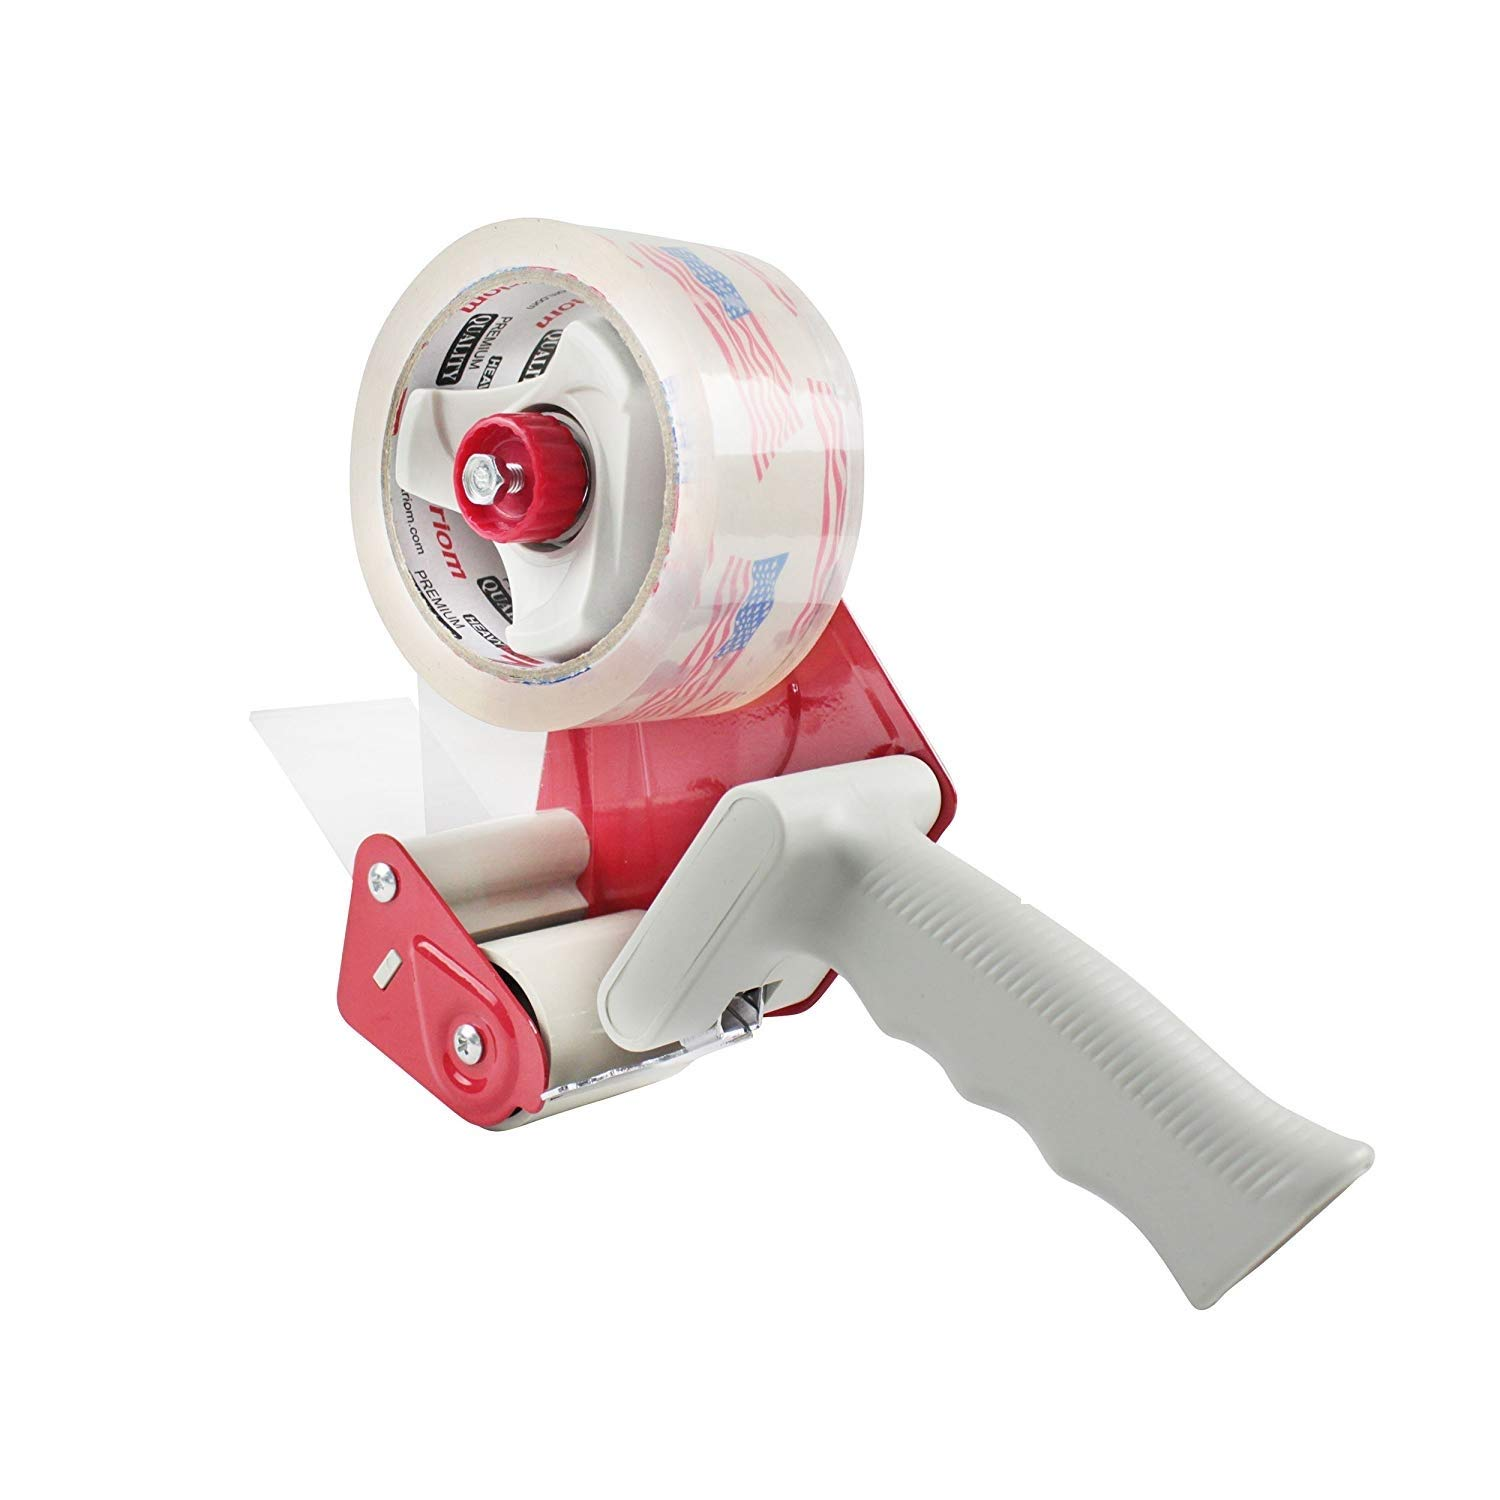 Packing Tape Dispenser, Tape Gun for Packaging, Moving, Box Sealing, Shipping Tape Dispenser, Use at Home, Office, or Storage, 1Pc, Red